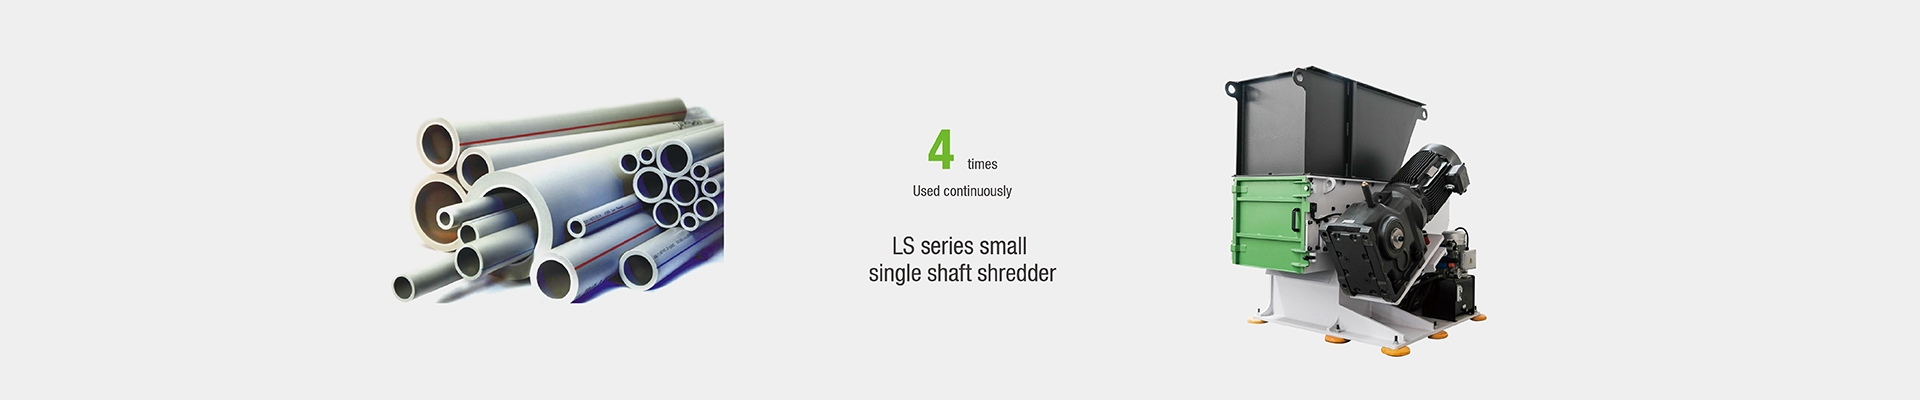 LS Series Plastic Waste Single Shaft Shredder With Small Volume And Wall Thickness